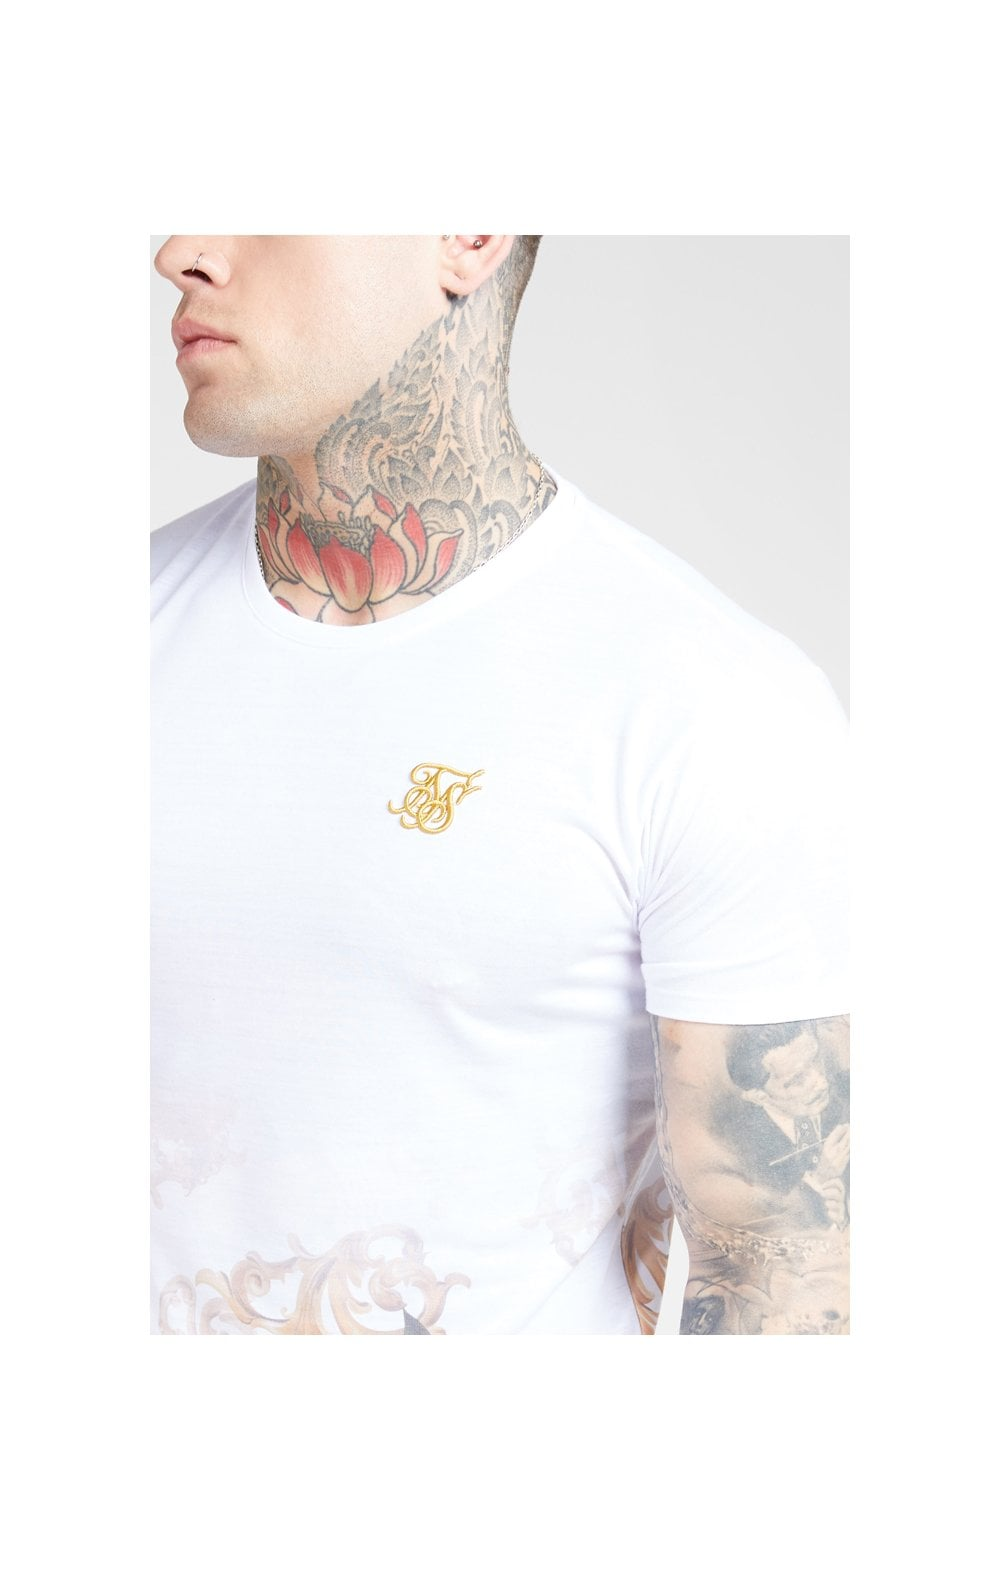 SikSilk S/S Curved Hem Tee - White & Floral Elegance MEN SIZES TOP: Small